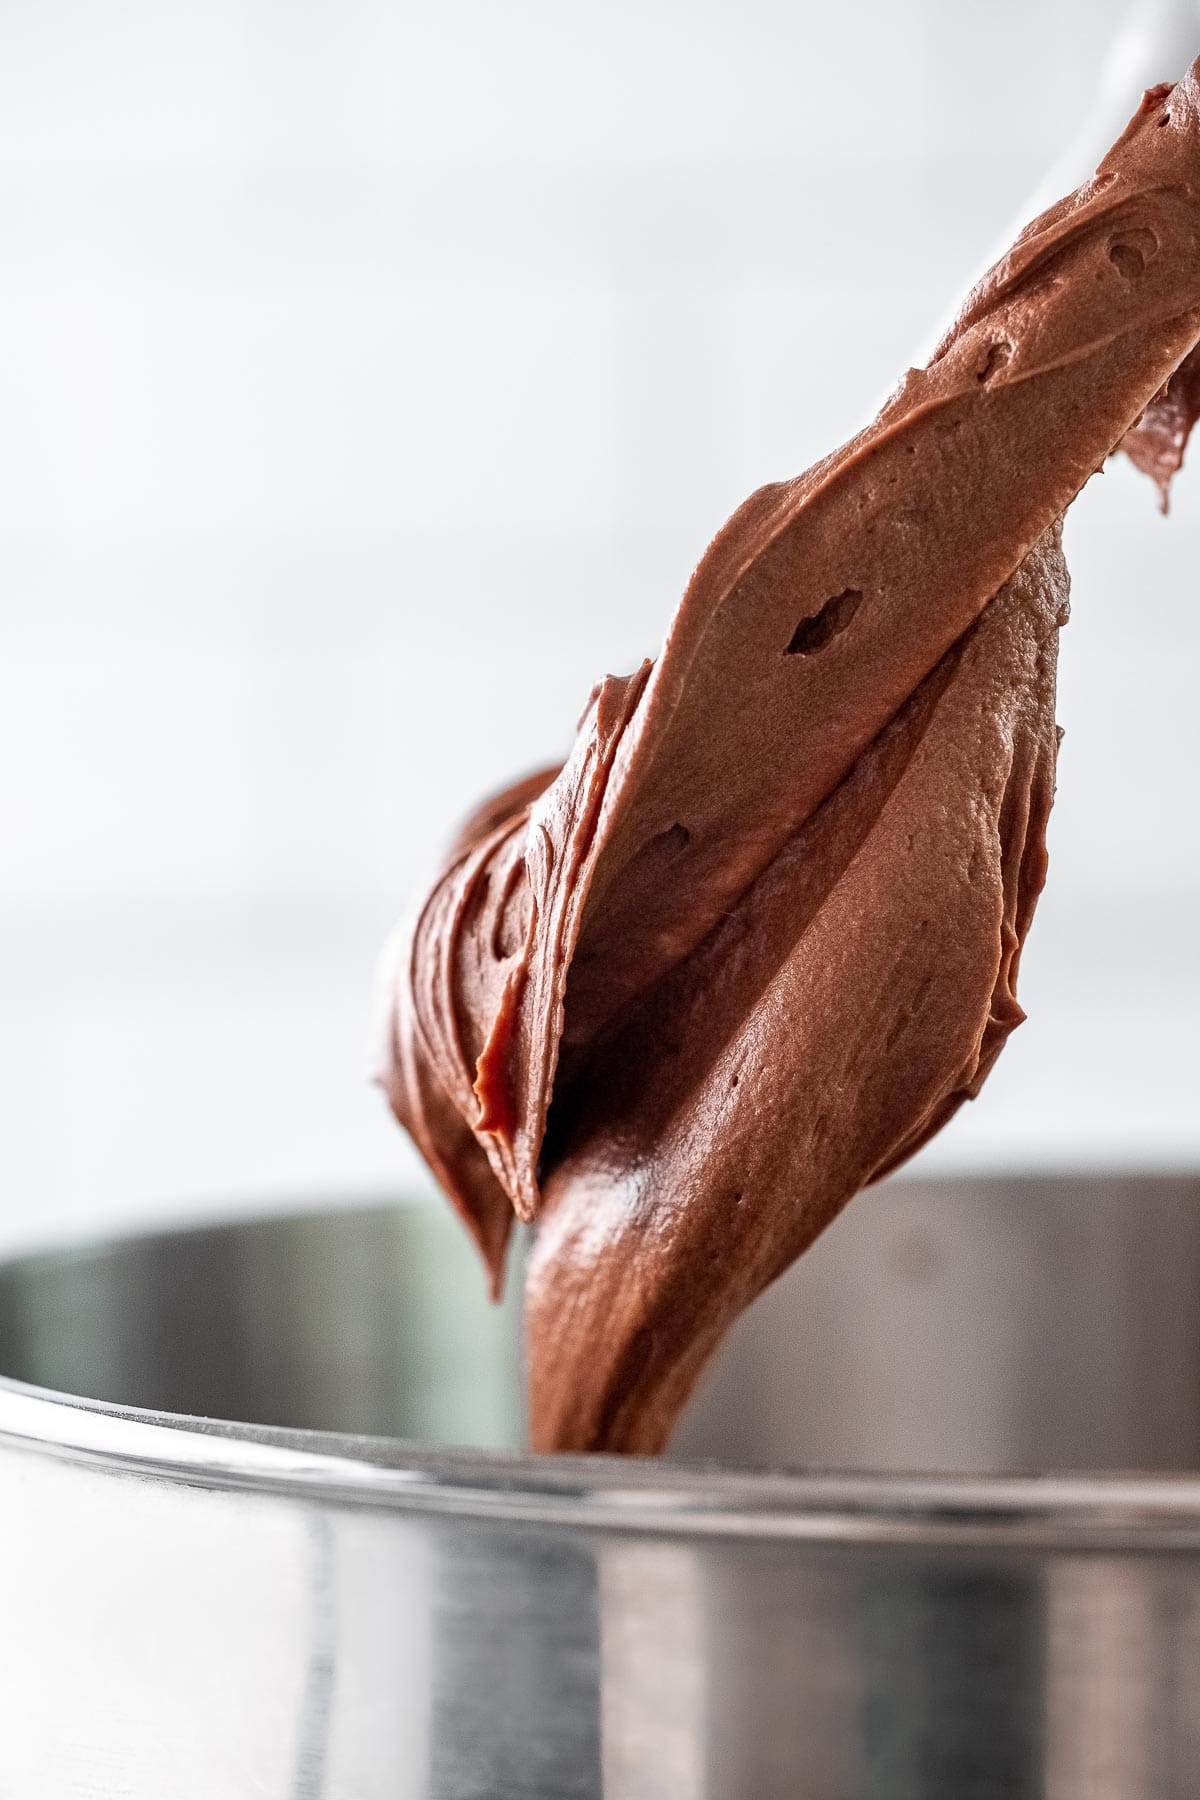 chocolate frosting on a blender paddle